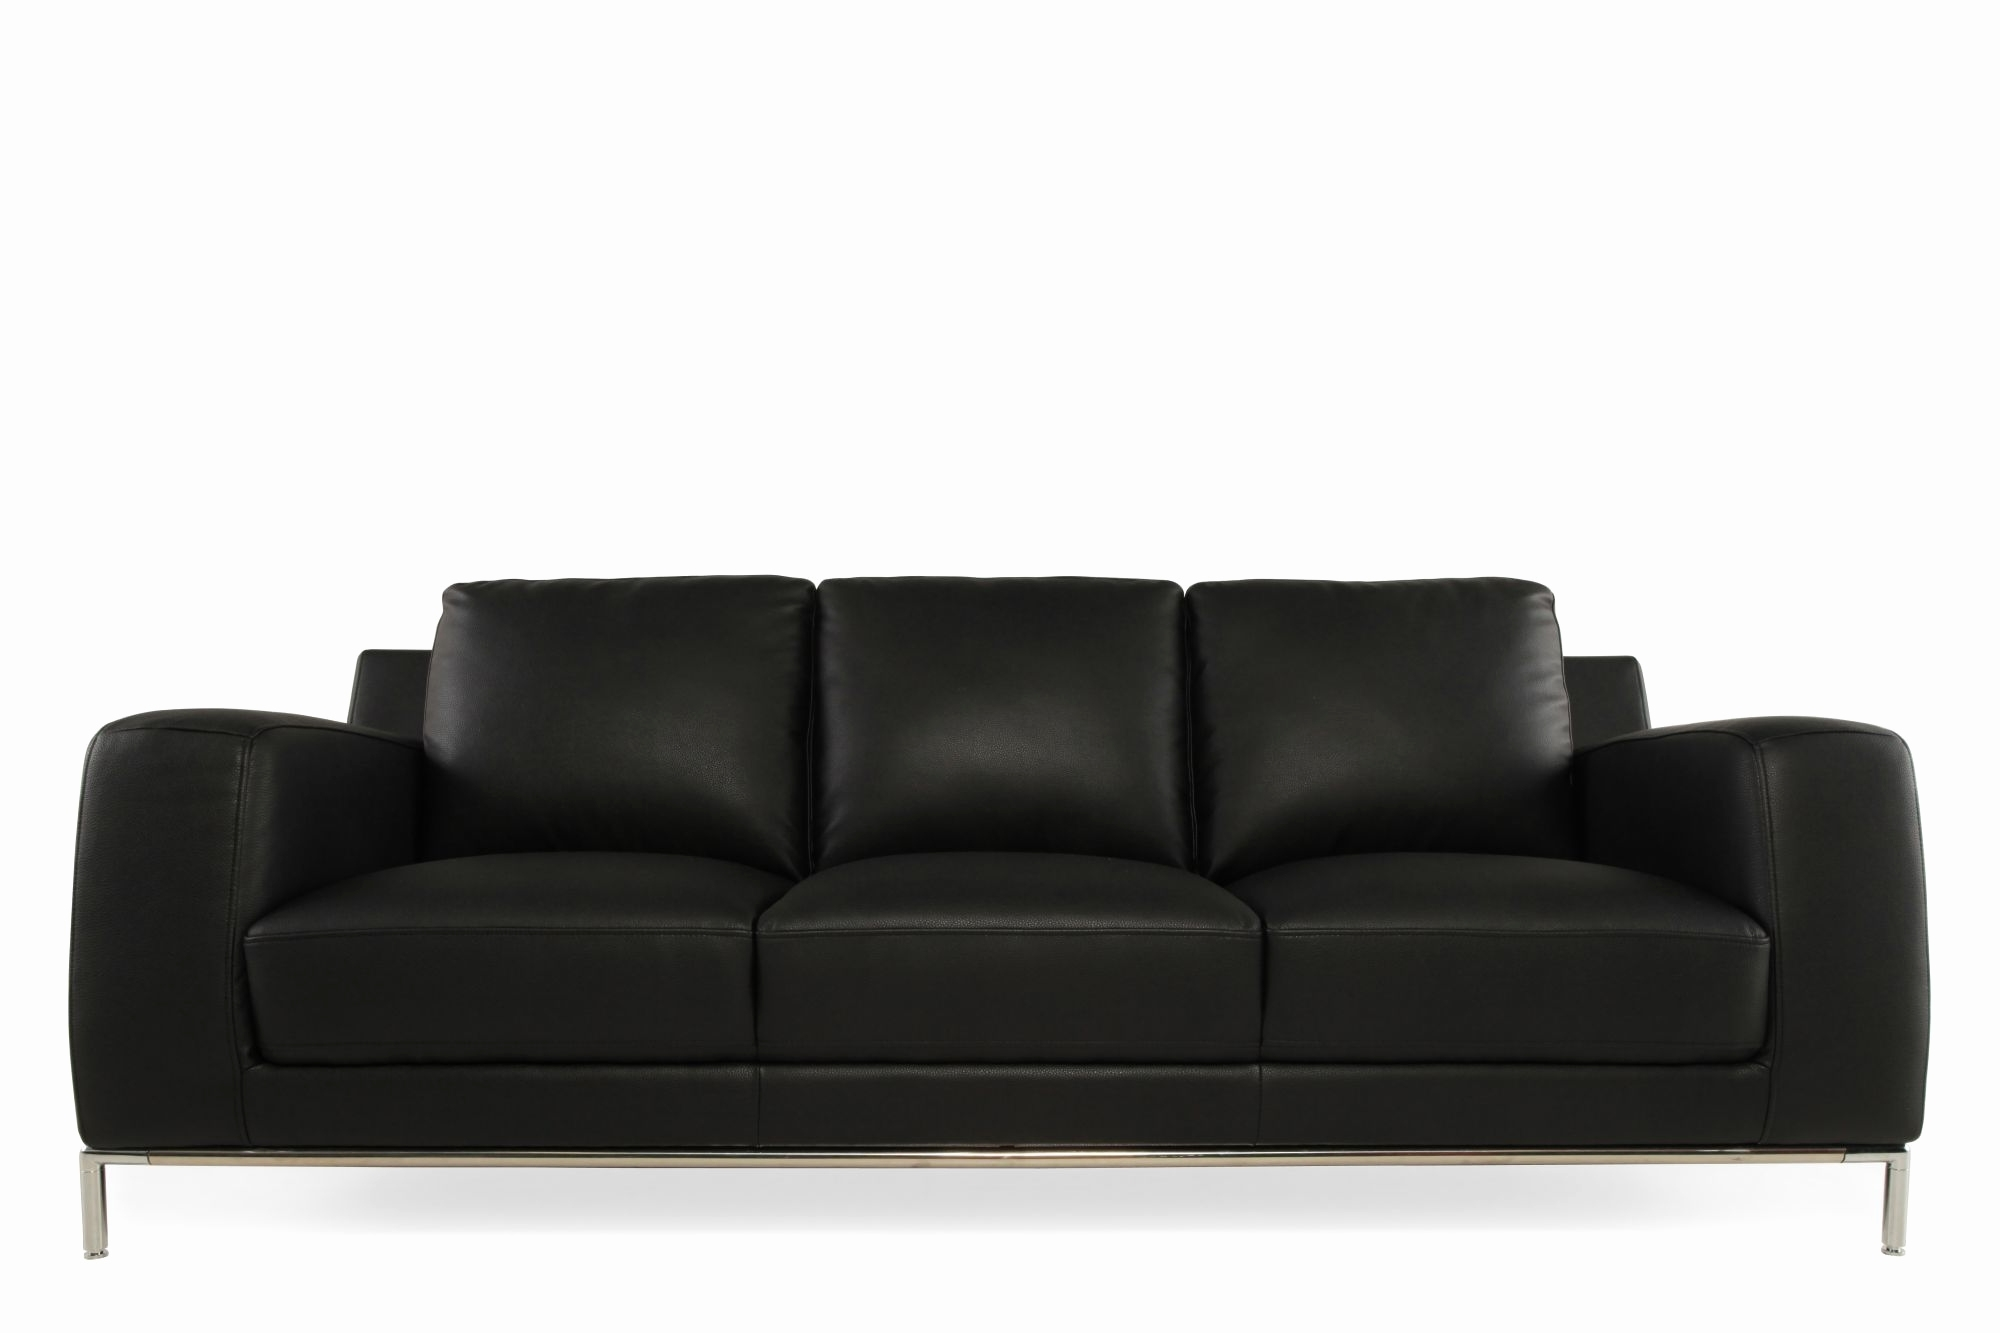 Fashionable Sofas : Akhtar Furniture Sofa Jeromes Sofas Ashley Furniture Couch Pertaining To Mathis Brothers Sectional Sofas (View 9 of 20)